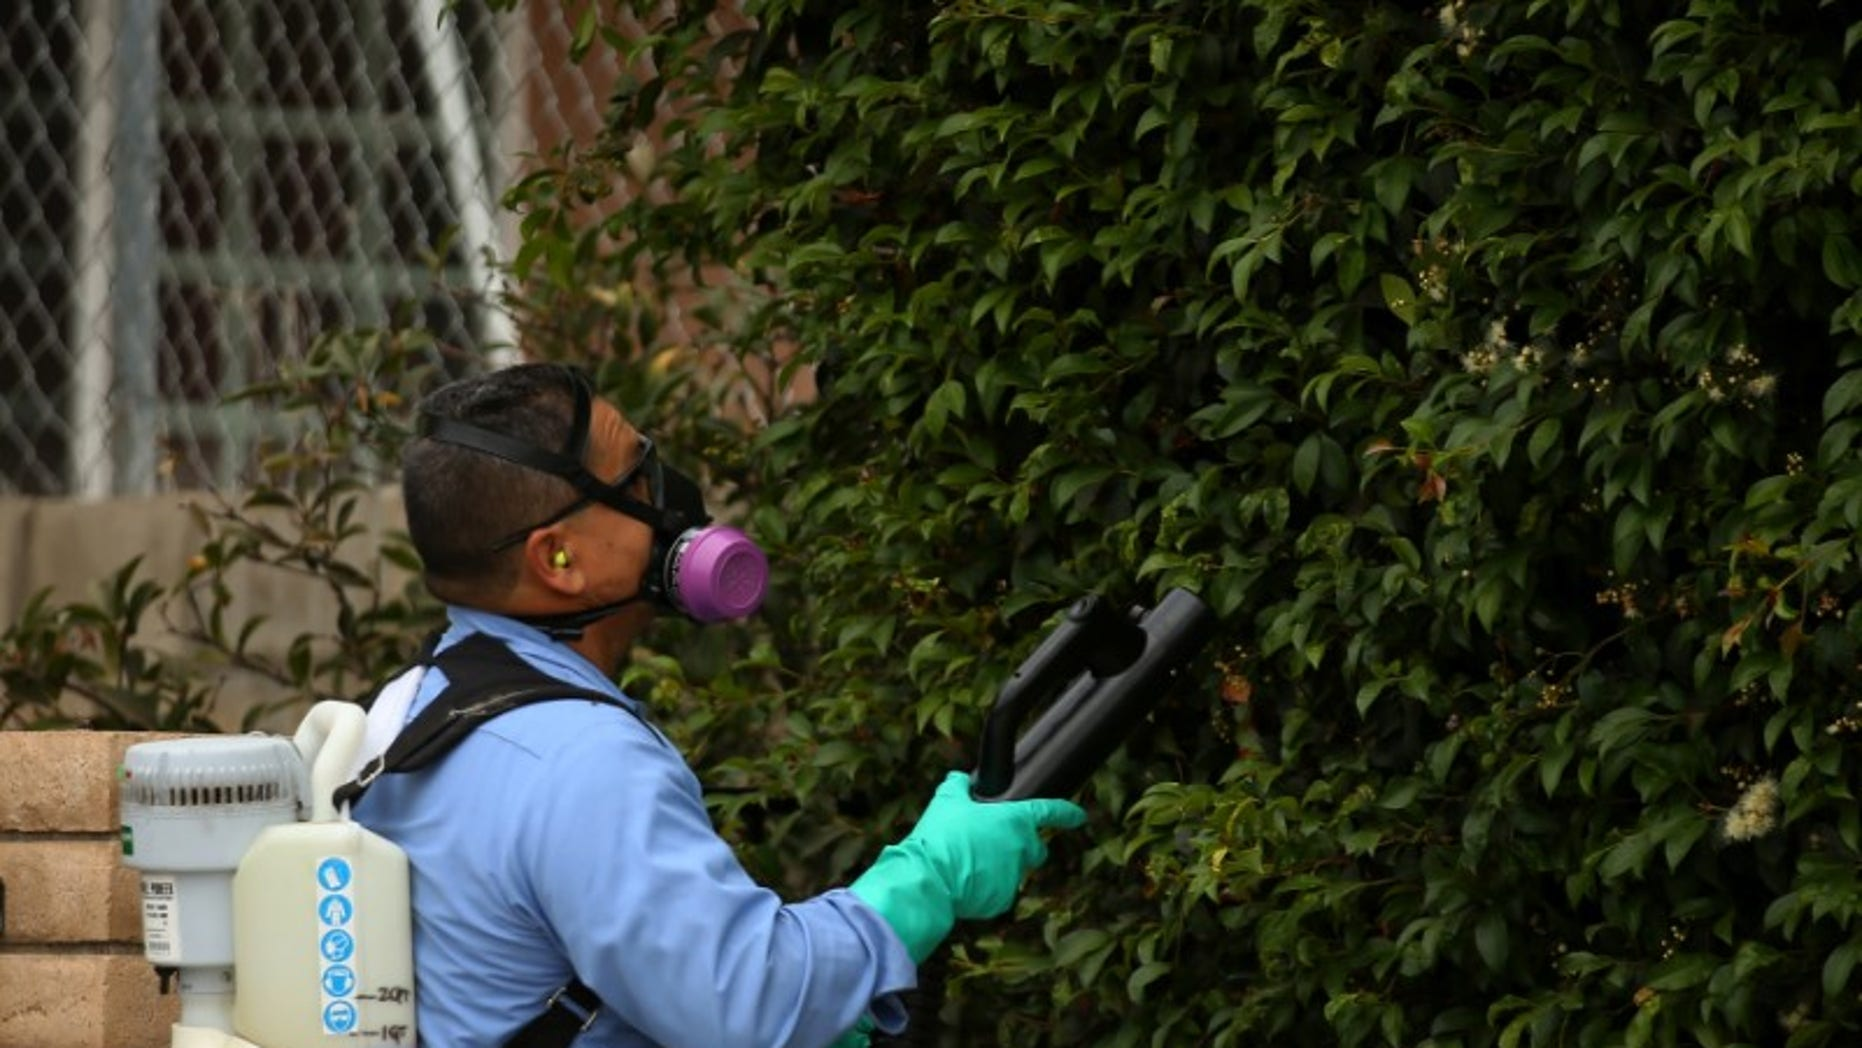 A county vector control member hand-sprays a neighborhood for adult Aedes mosquitoes after a travel-related case of Zika was confirmed in this area of San Diego